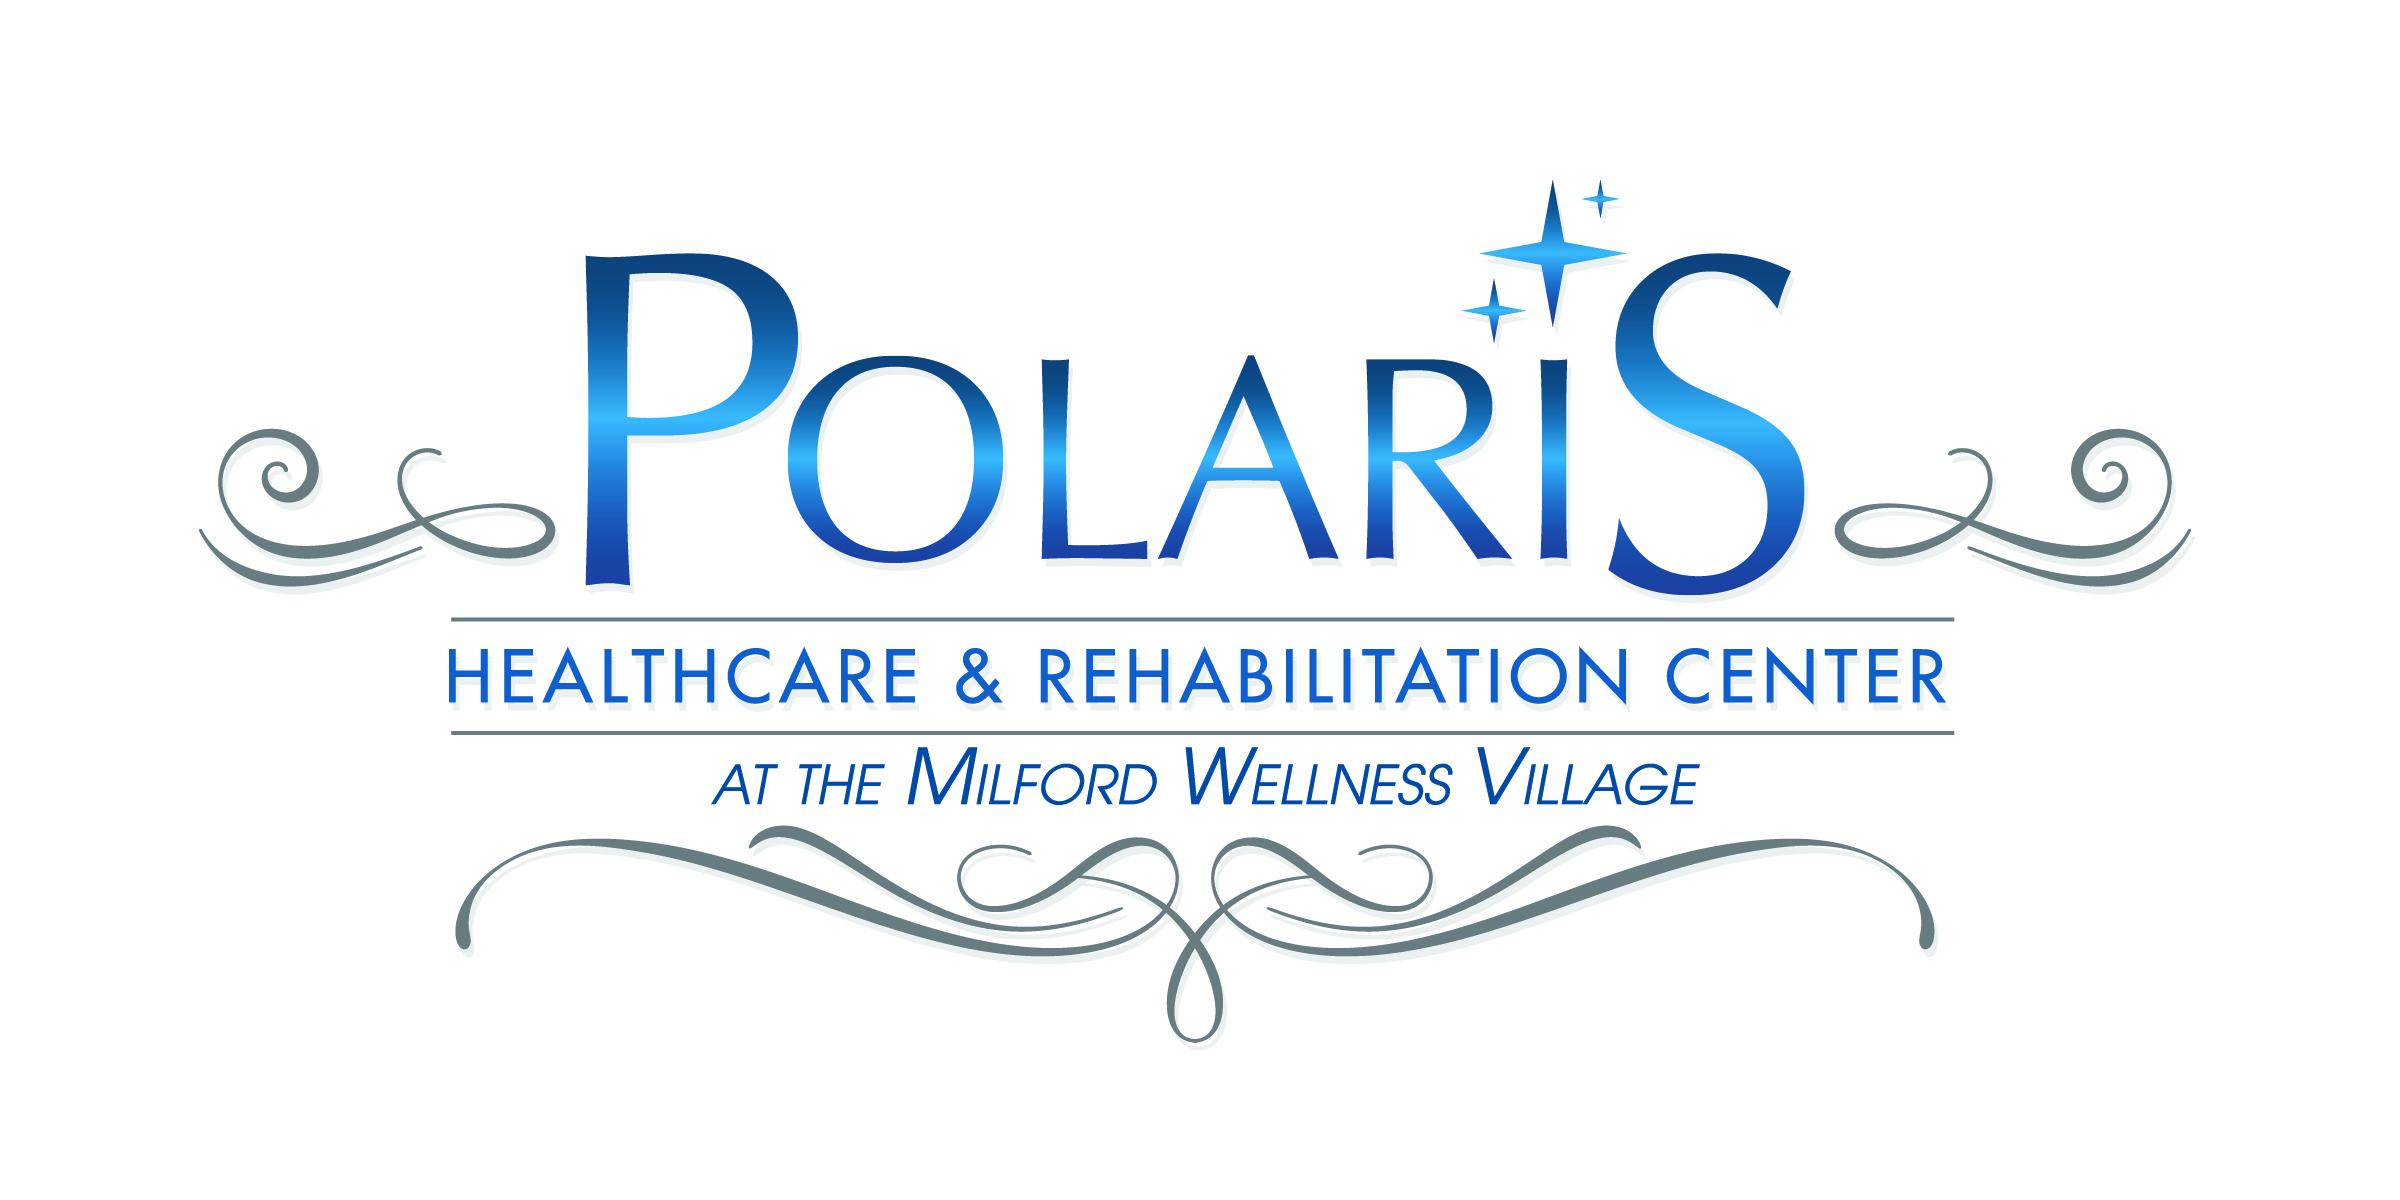 Polaris Healthcare & Rehabilitation Center at the Milford Wellness Village